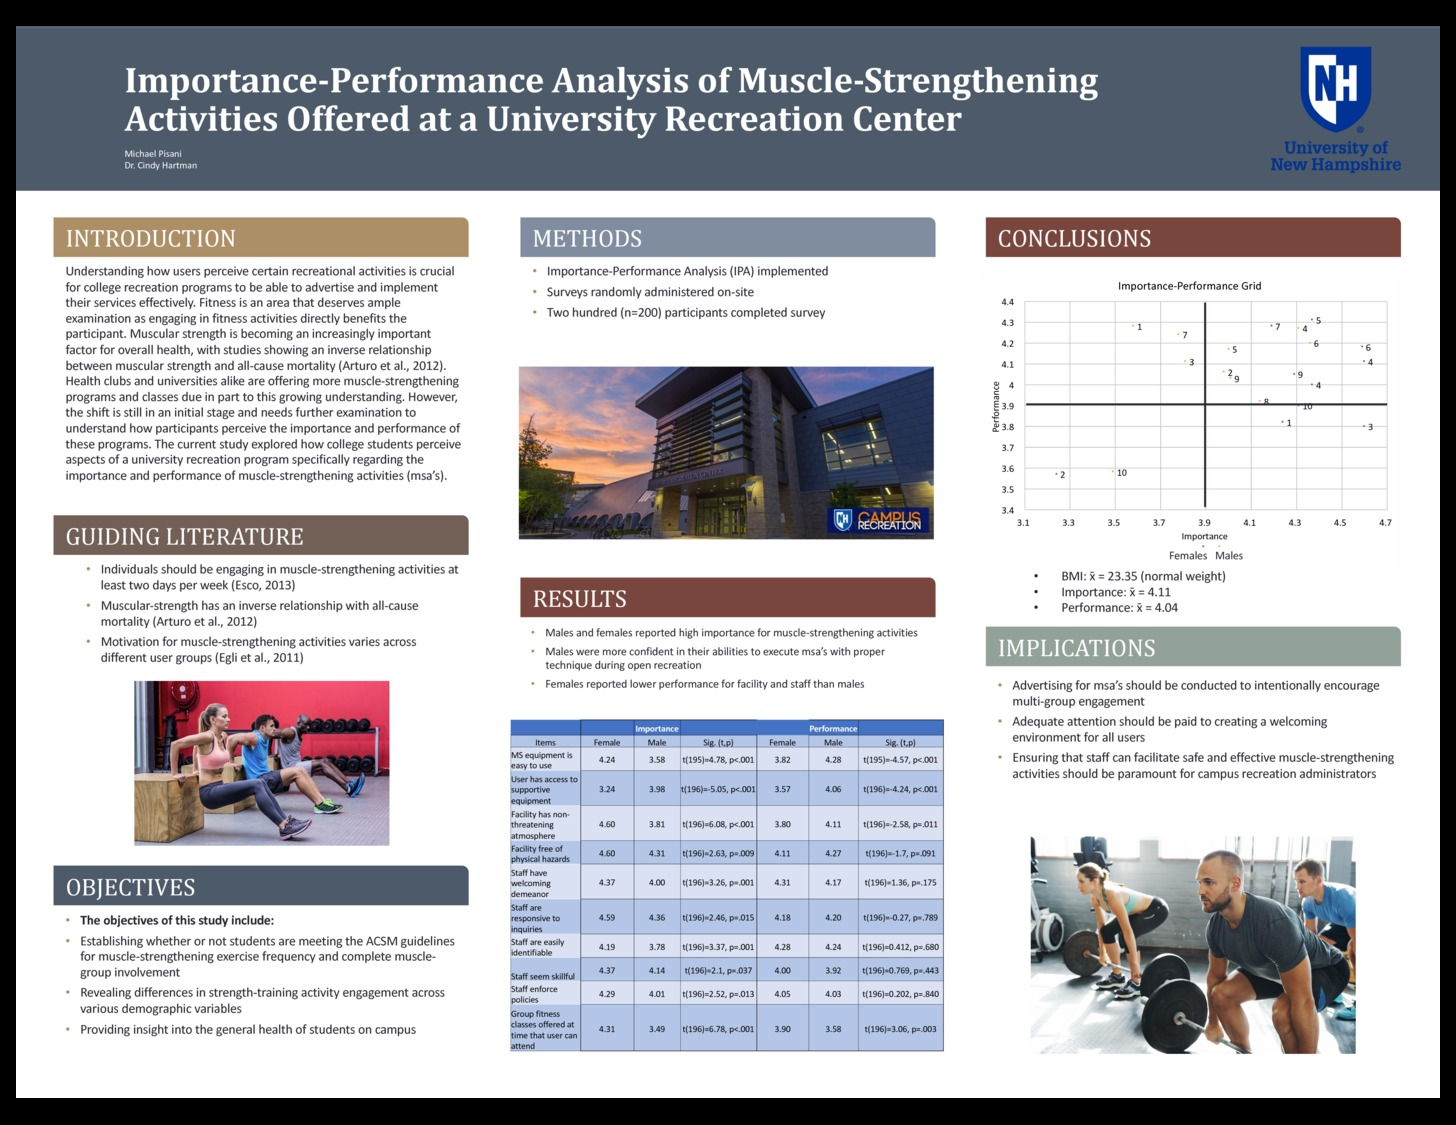 Importance-Performance Analysis Of Muscle-Strengthening Activities Offered At A University Recreation Center by mvp1006